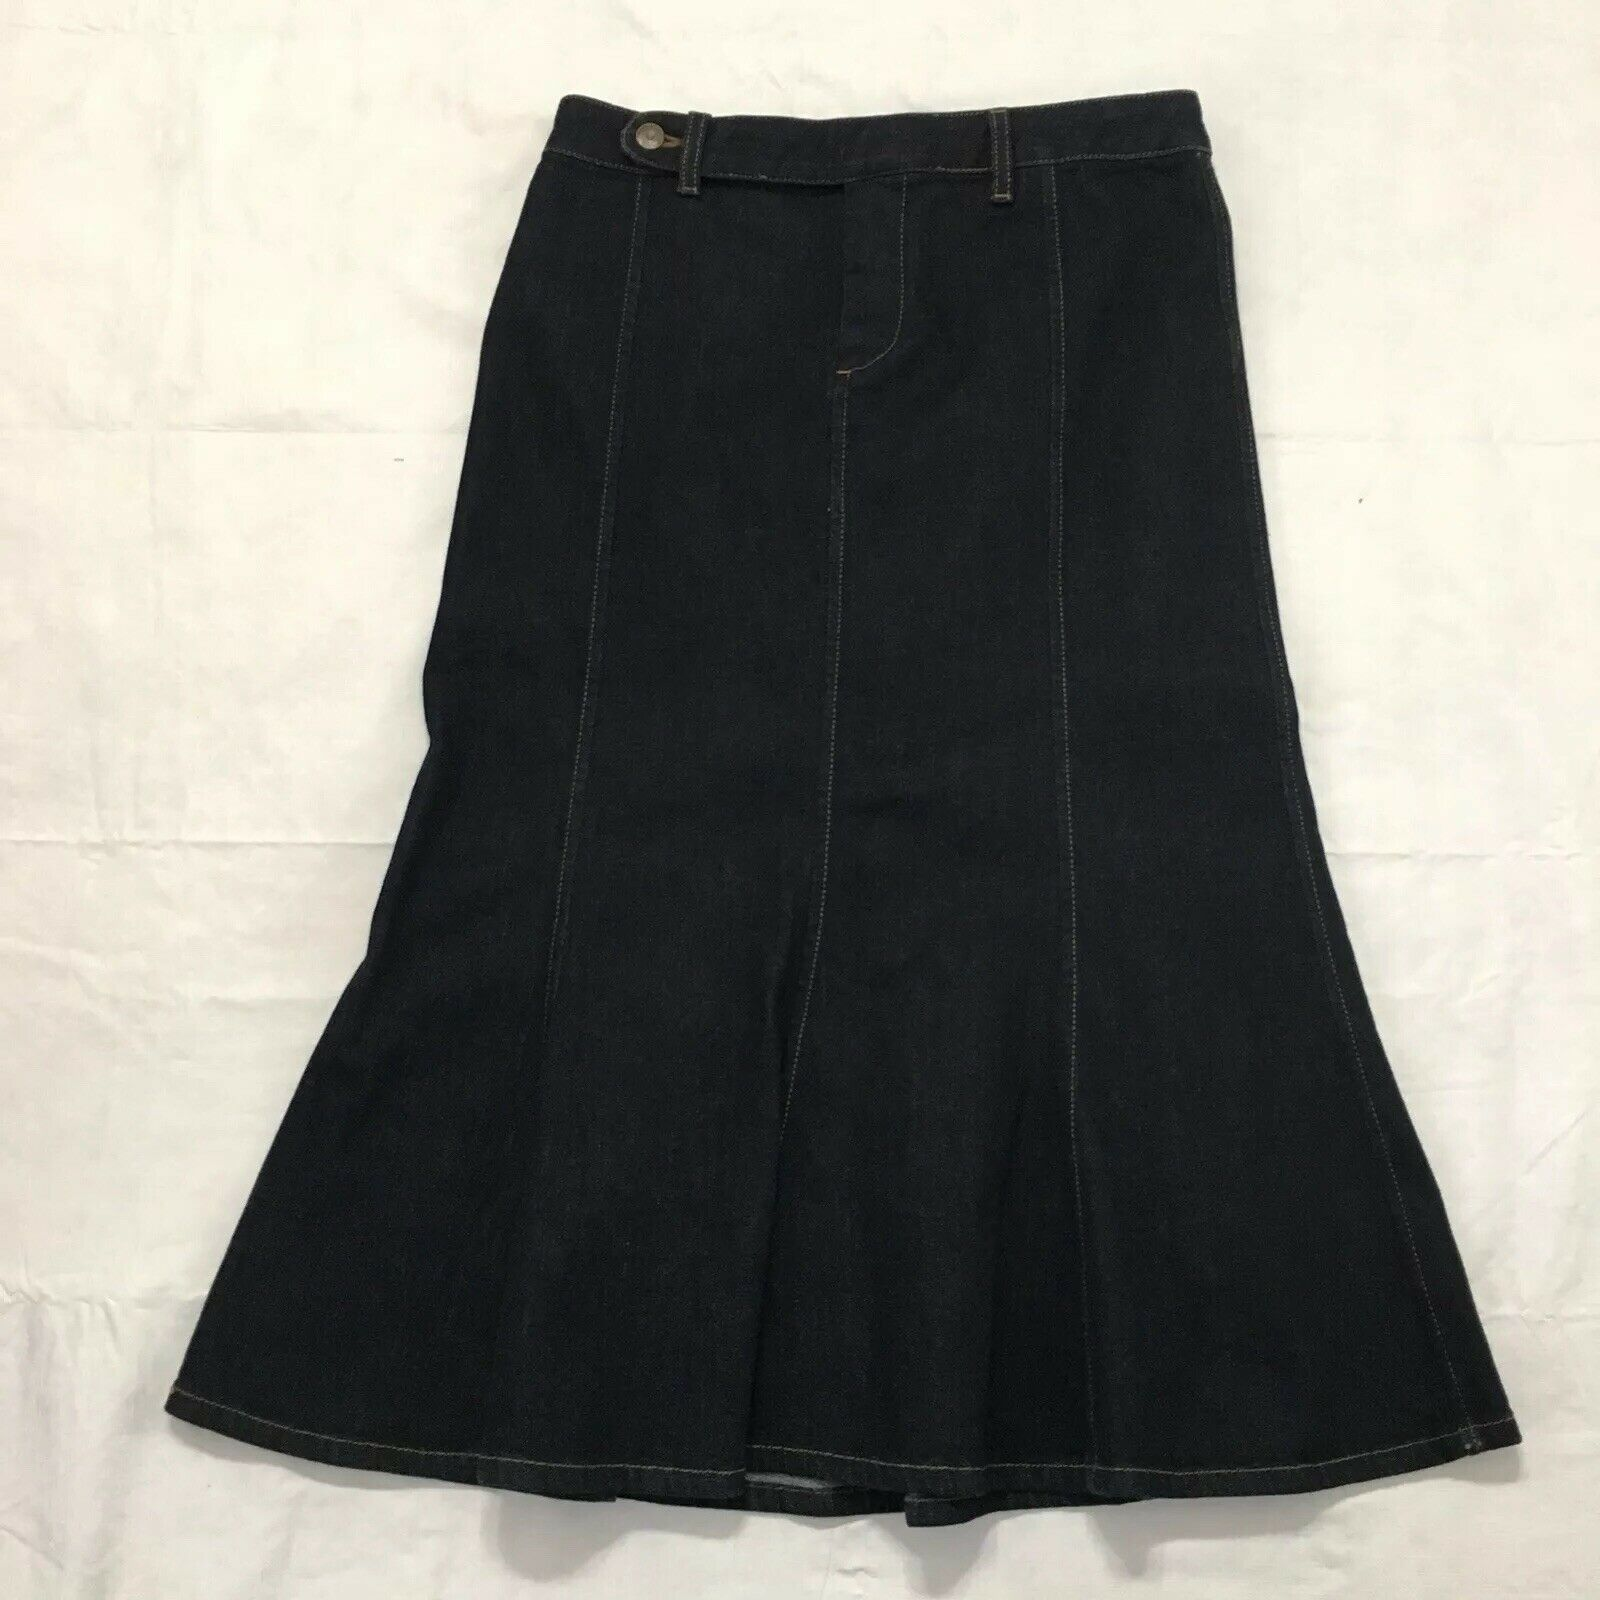 Lauren Jeans Ralph Lauren Trumpet Skirt Size 4 Dark Wash Stretch Denim